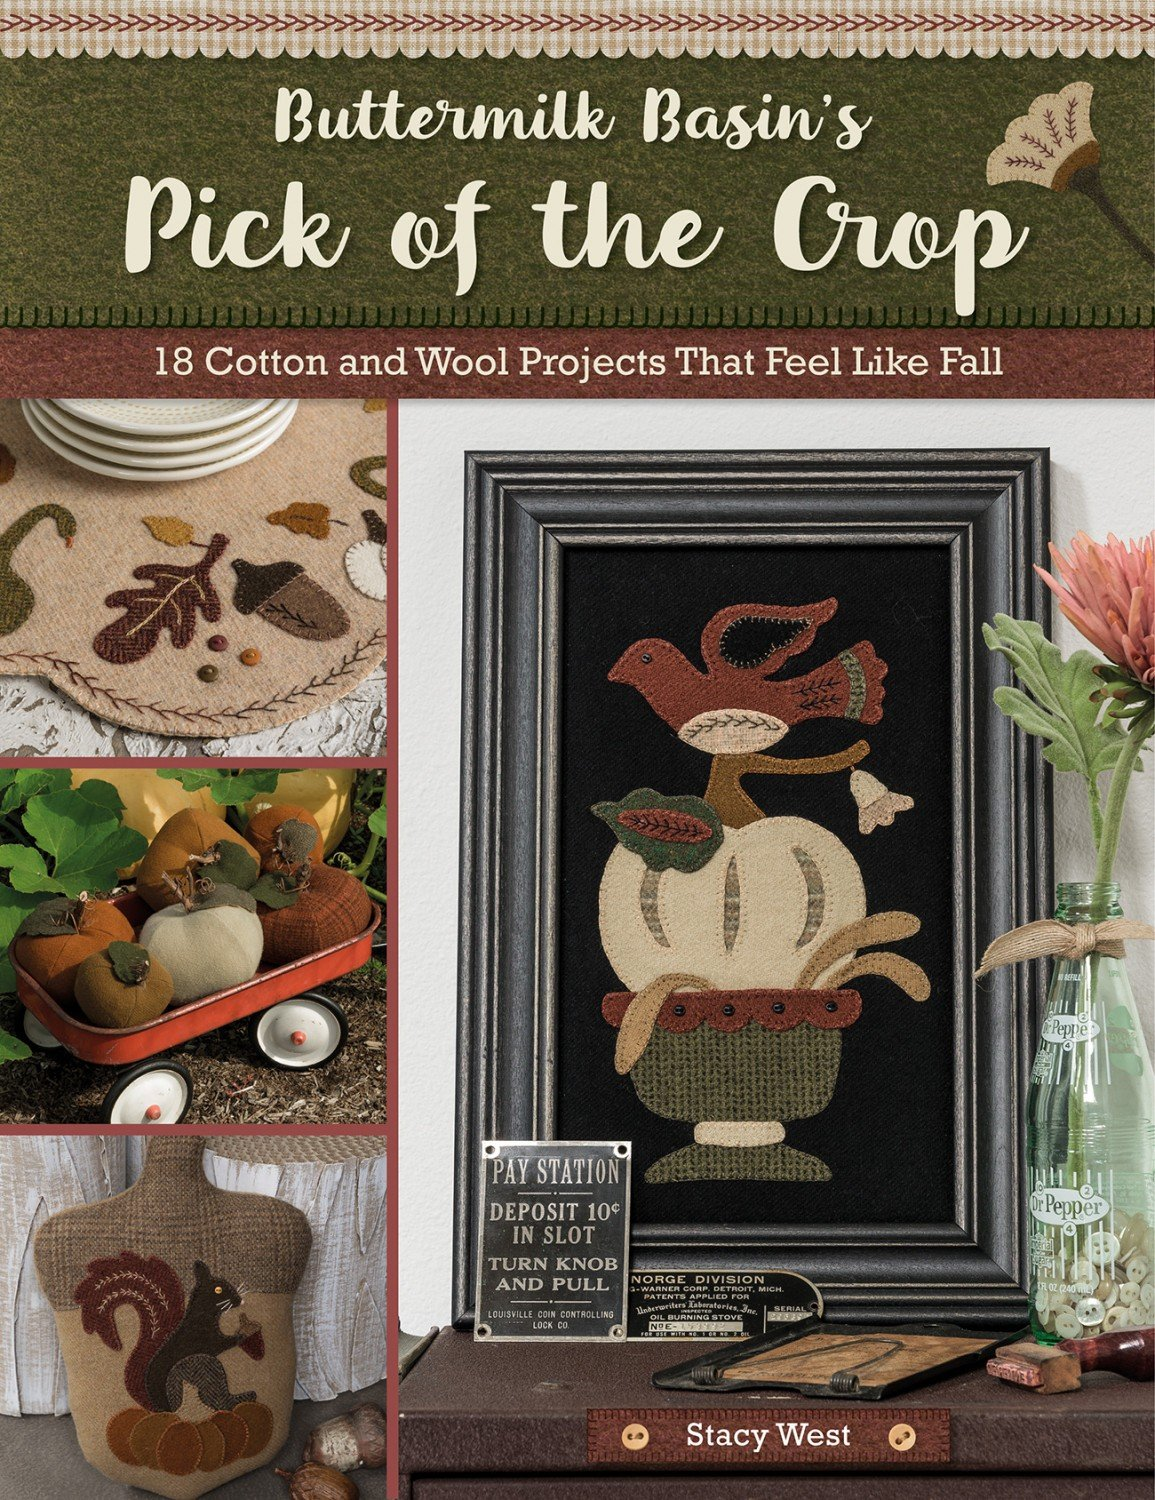 PICK OF THE CROP BY BUTTERMILK BASIN